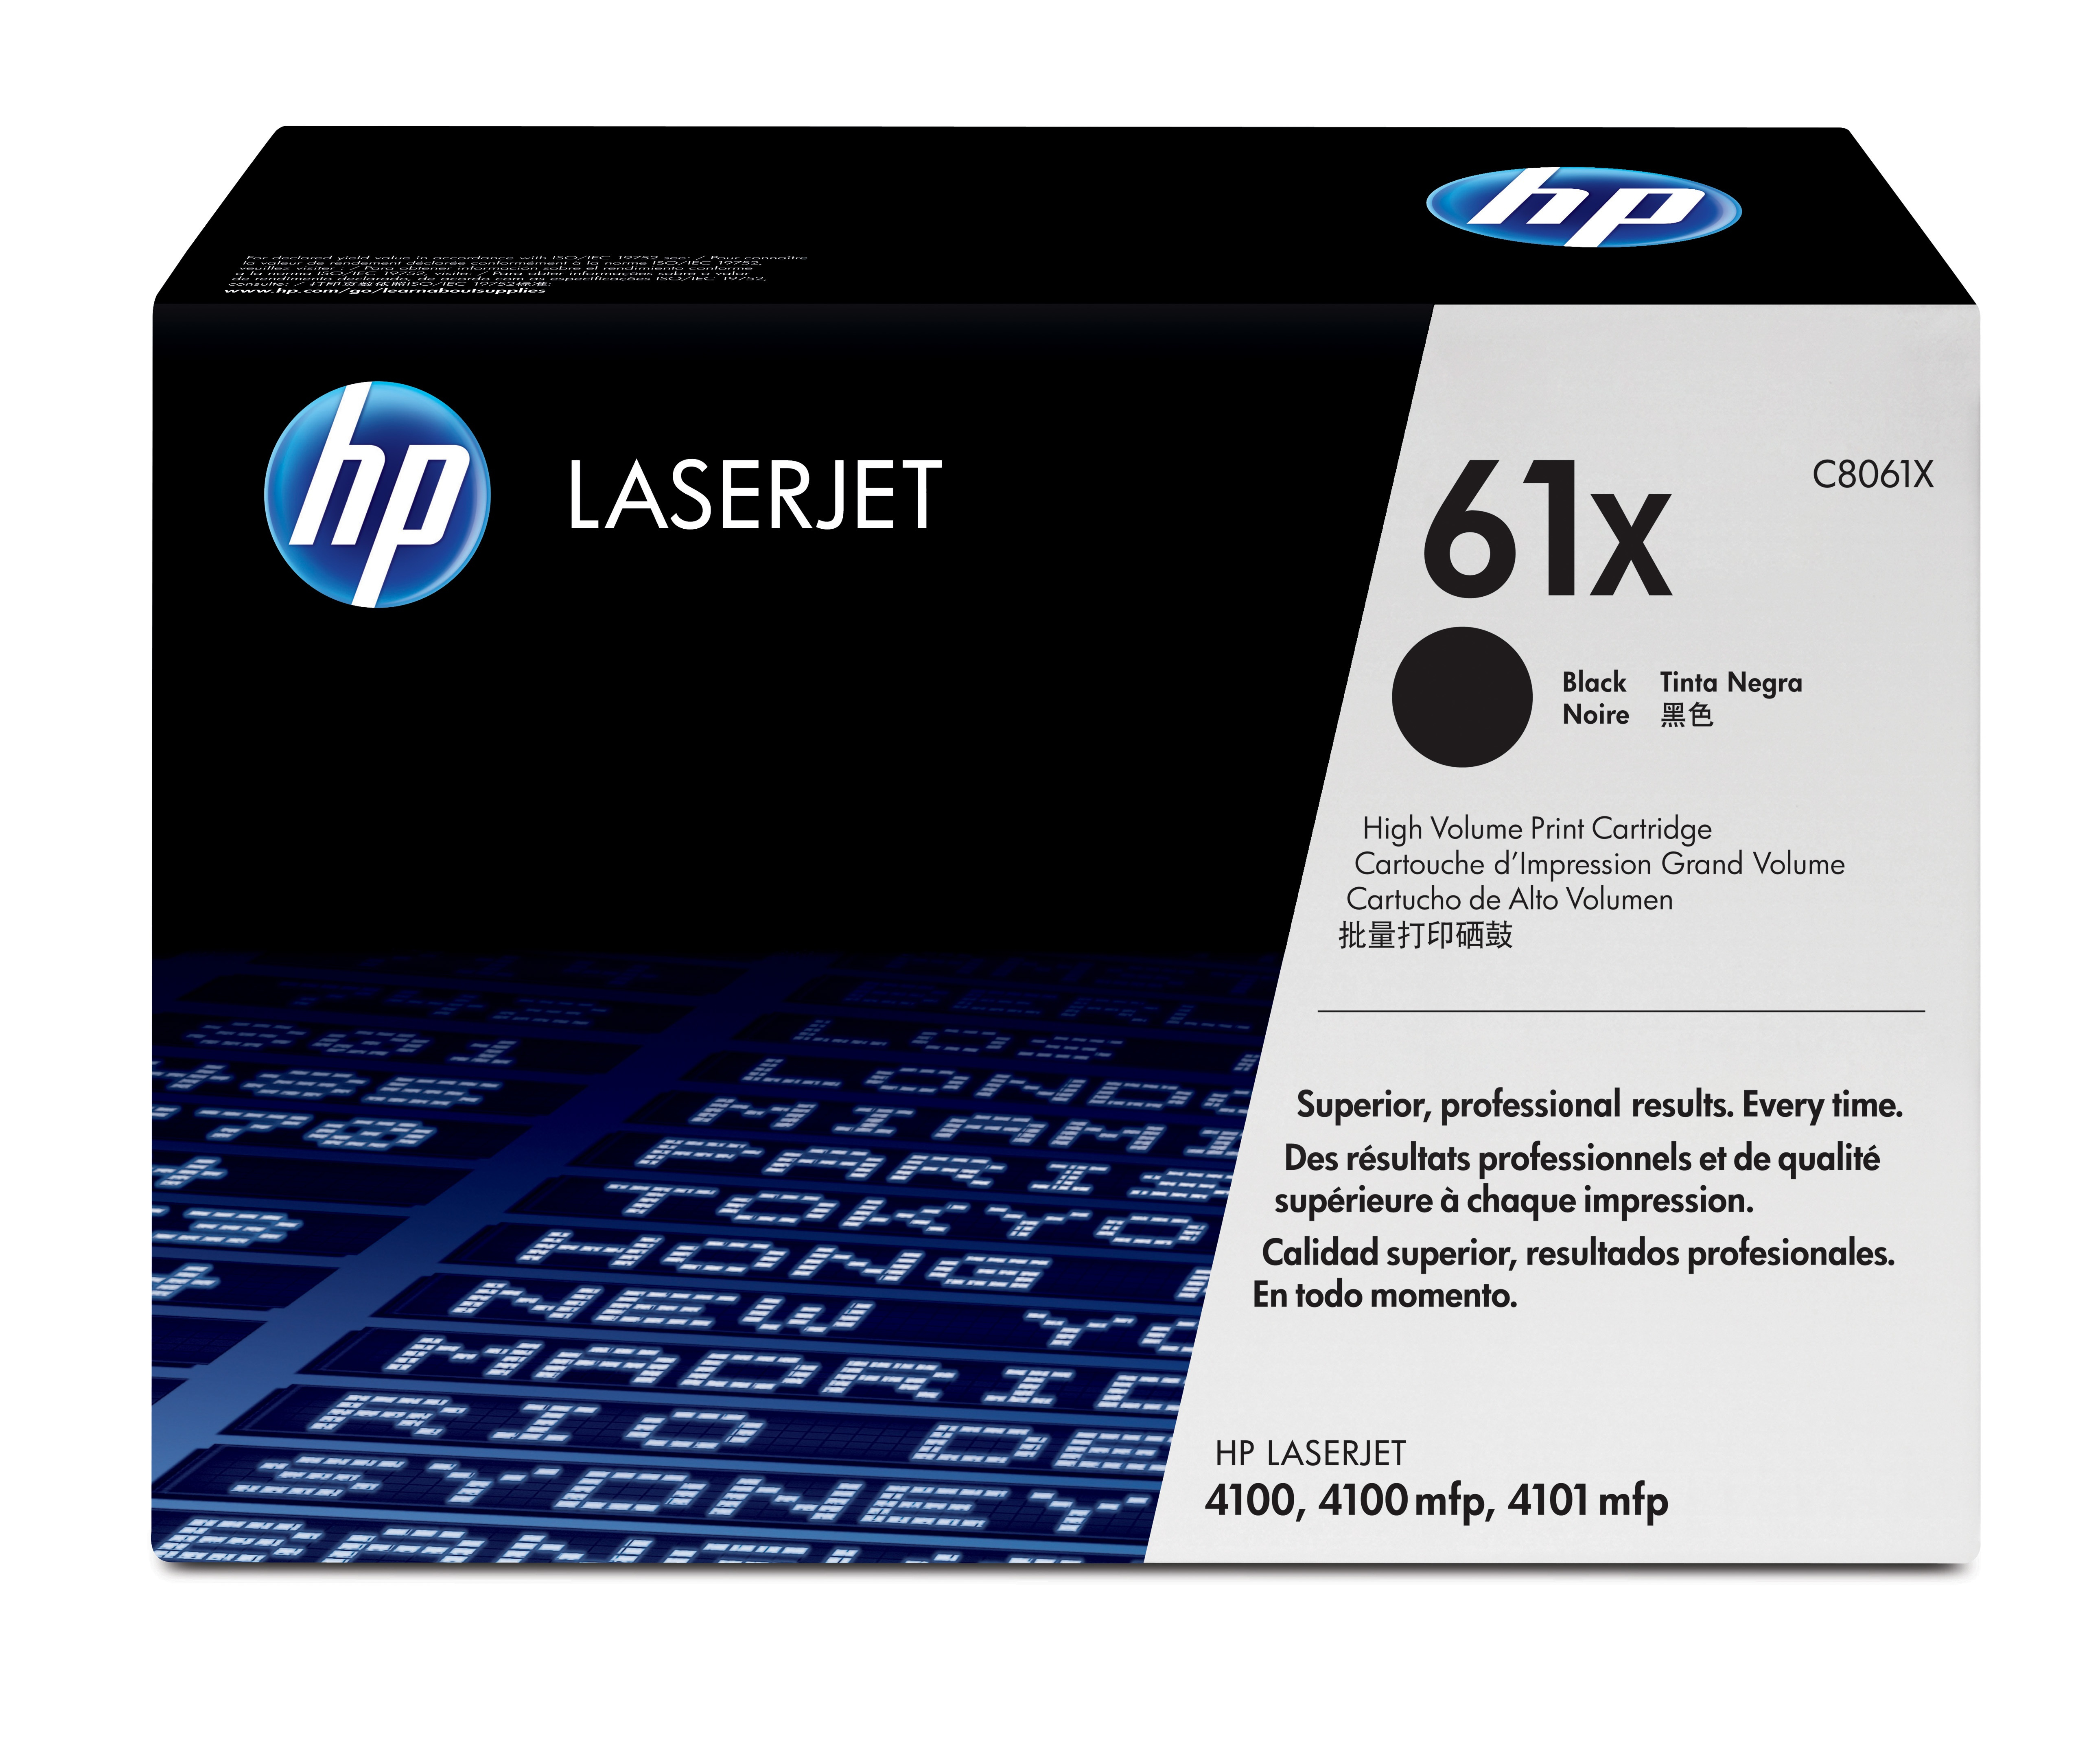 Remanufactured HP C8061X Toner Cartridge Black 10K C8061X - rem01